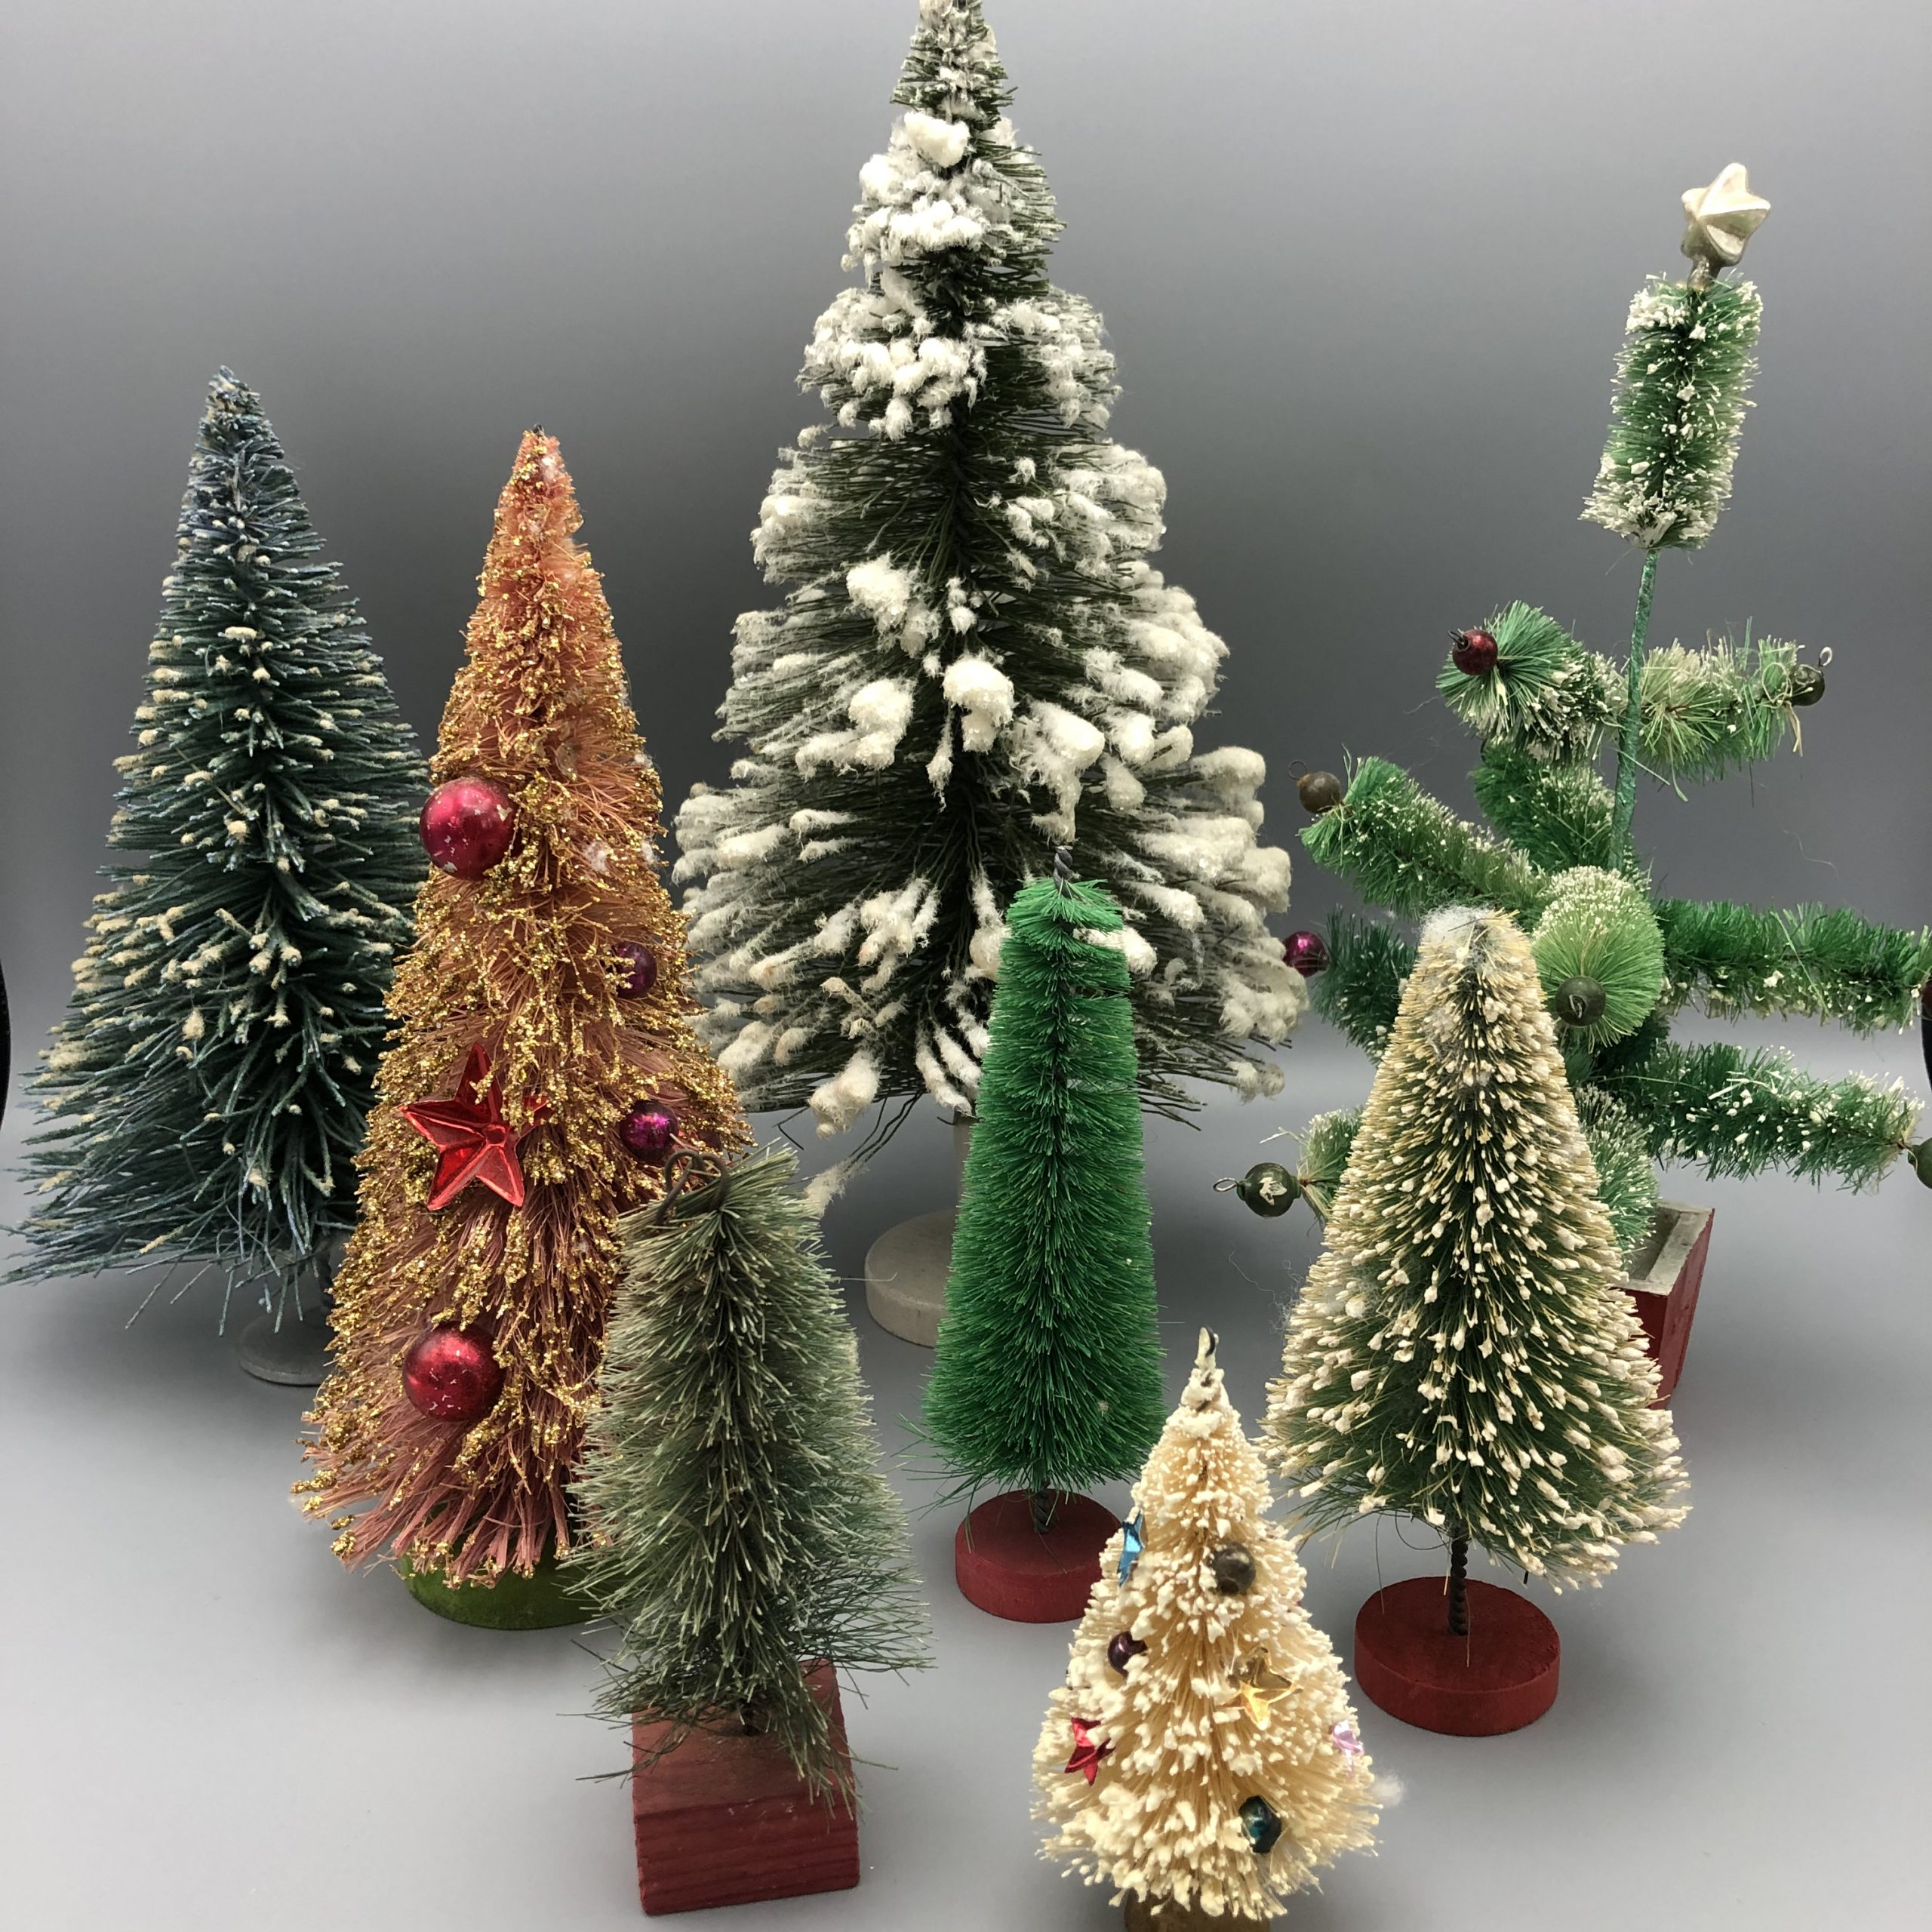 Set of 2 wooden handpainted Santa Clauses on wooden skis wearing red knitted toboggans Christmas trees ornaments /& other kitschy displays.